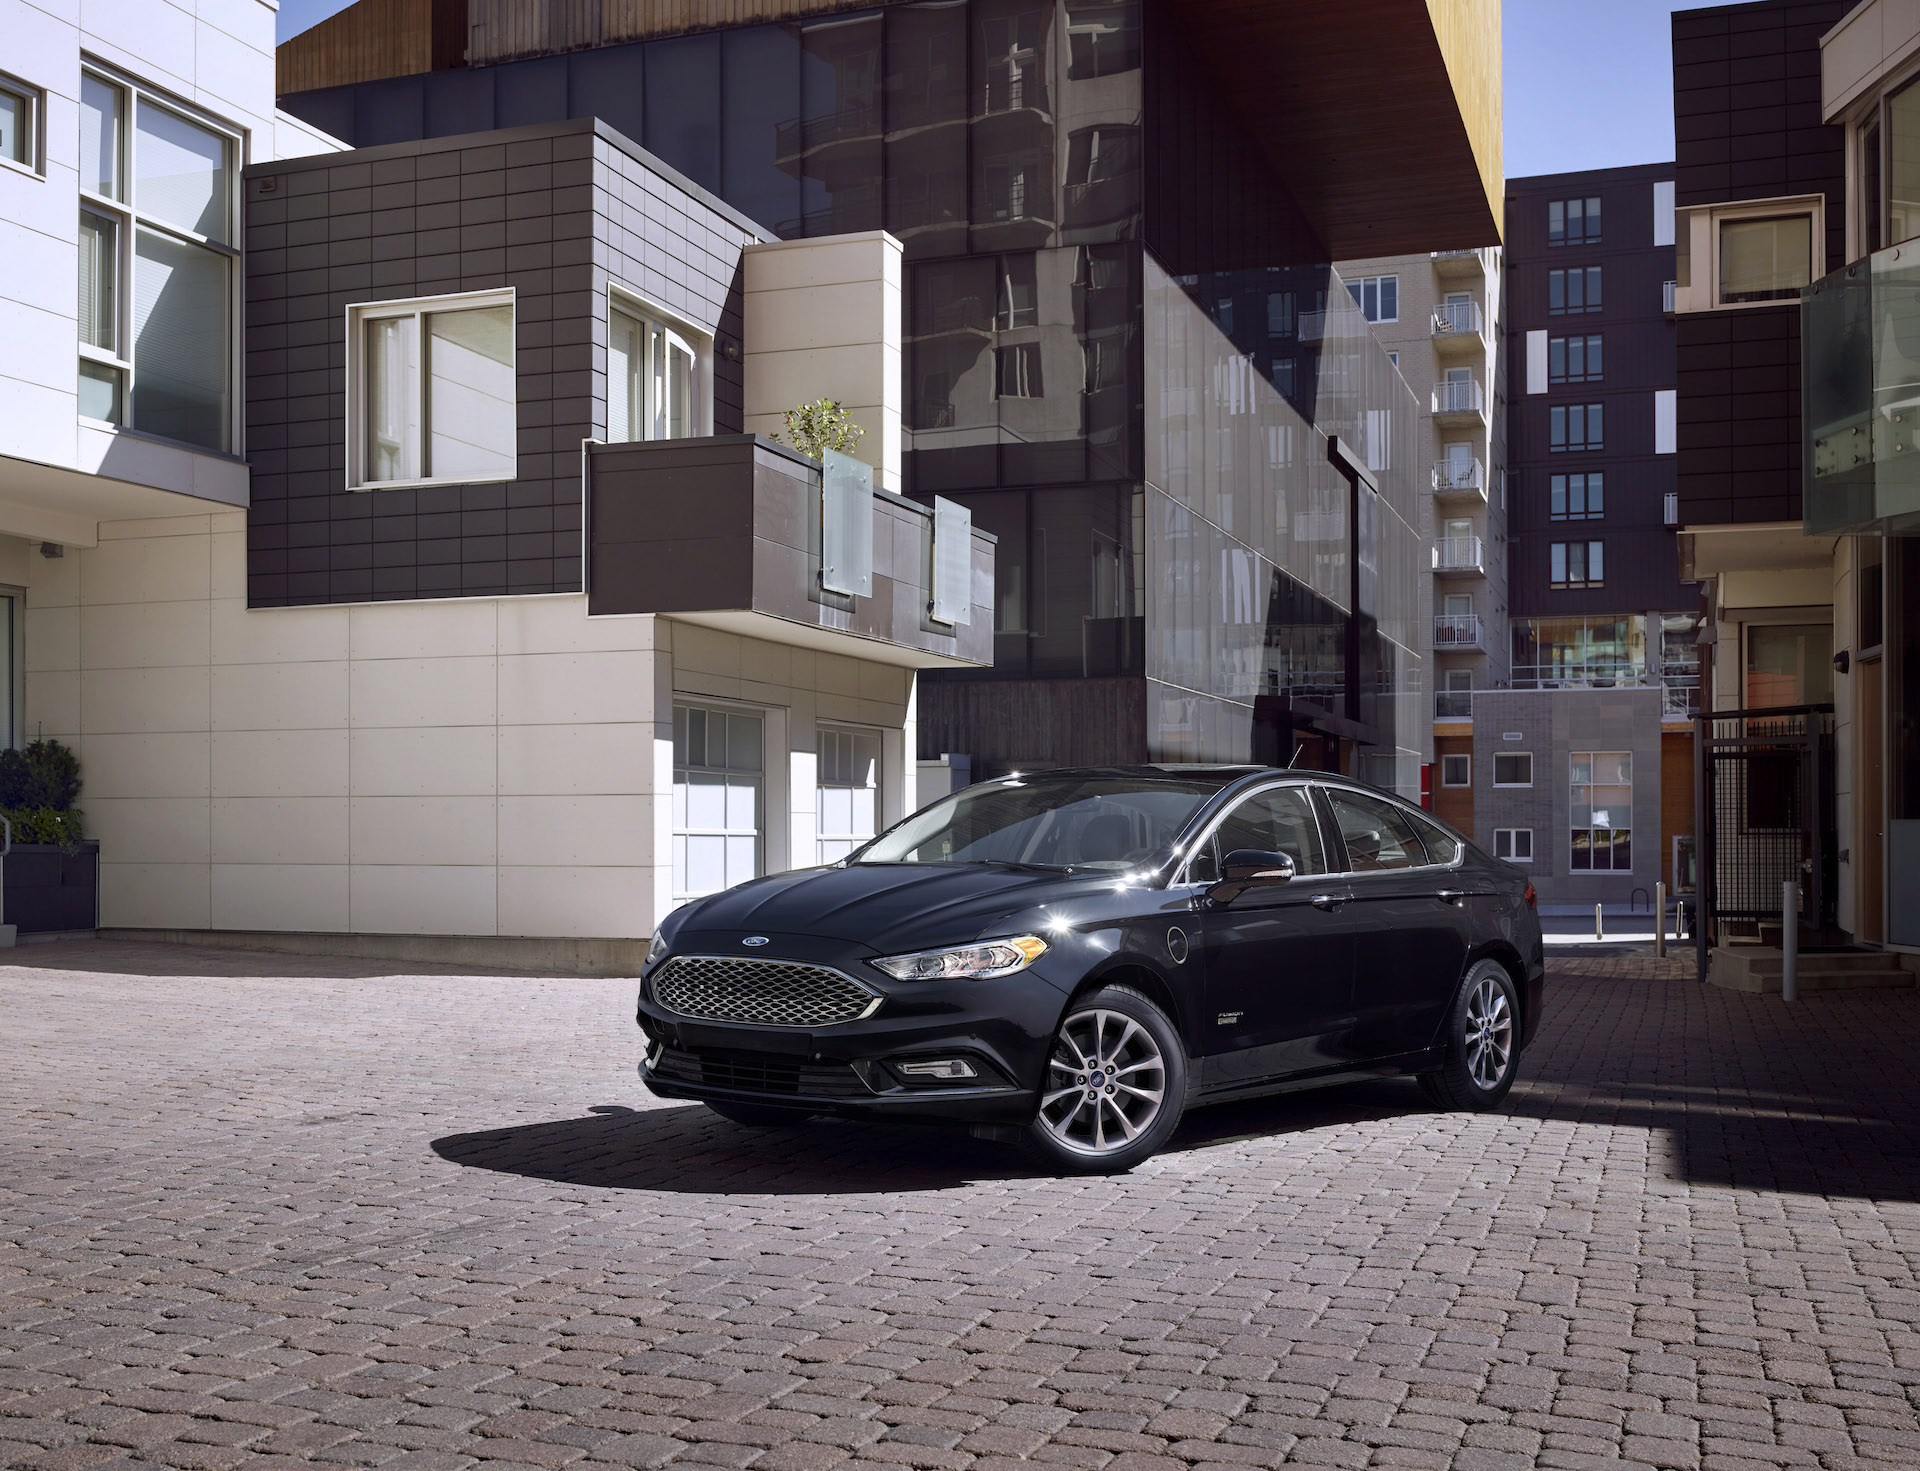 2017 Ford Fusion Hybrid And Energi How Engineers Increased Fuel Efficiency